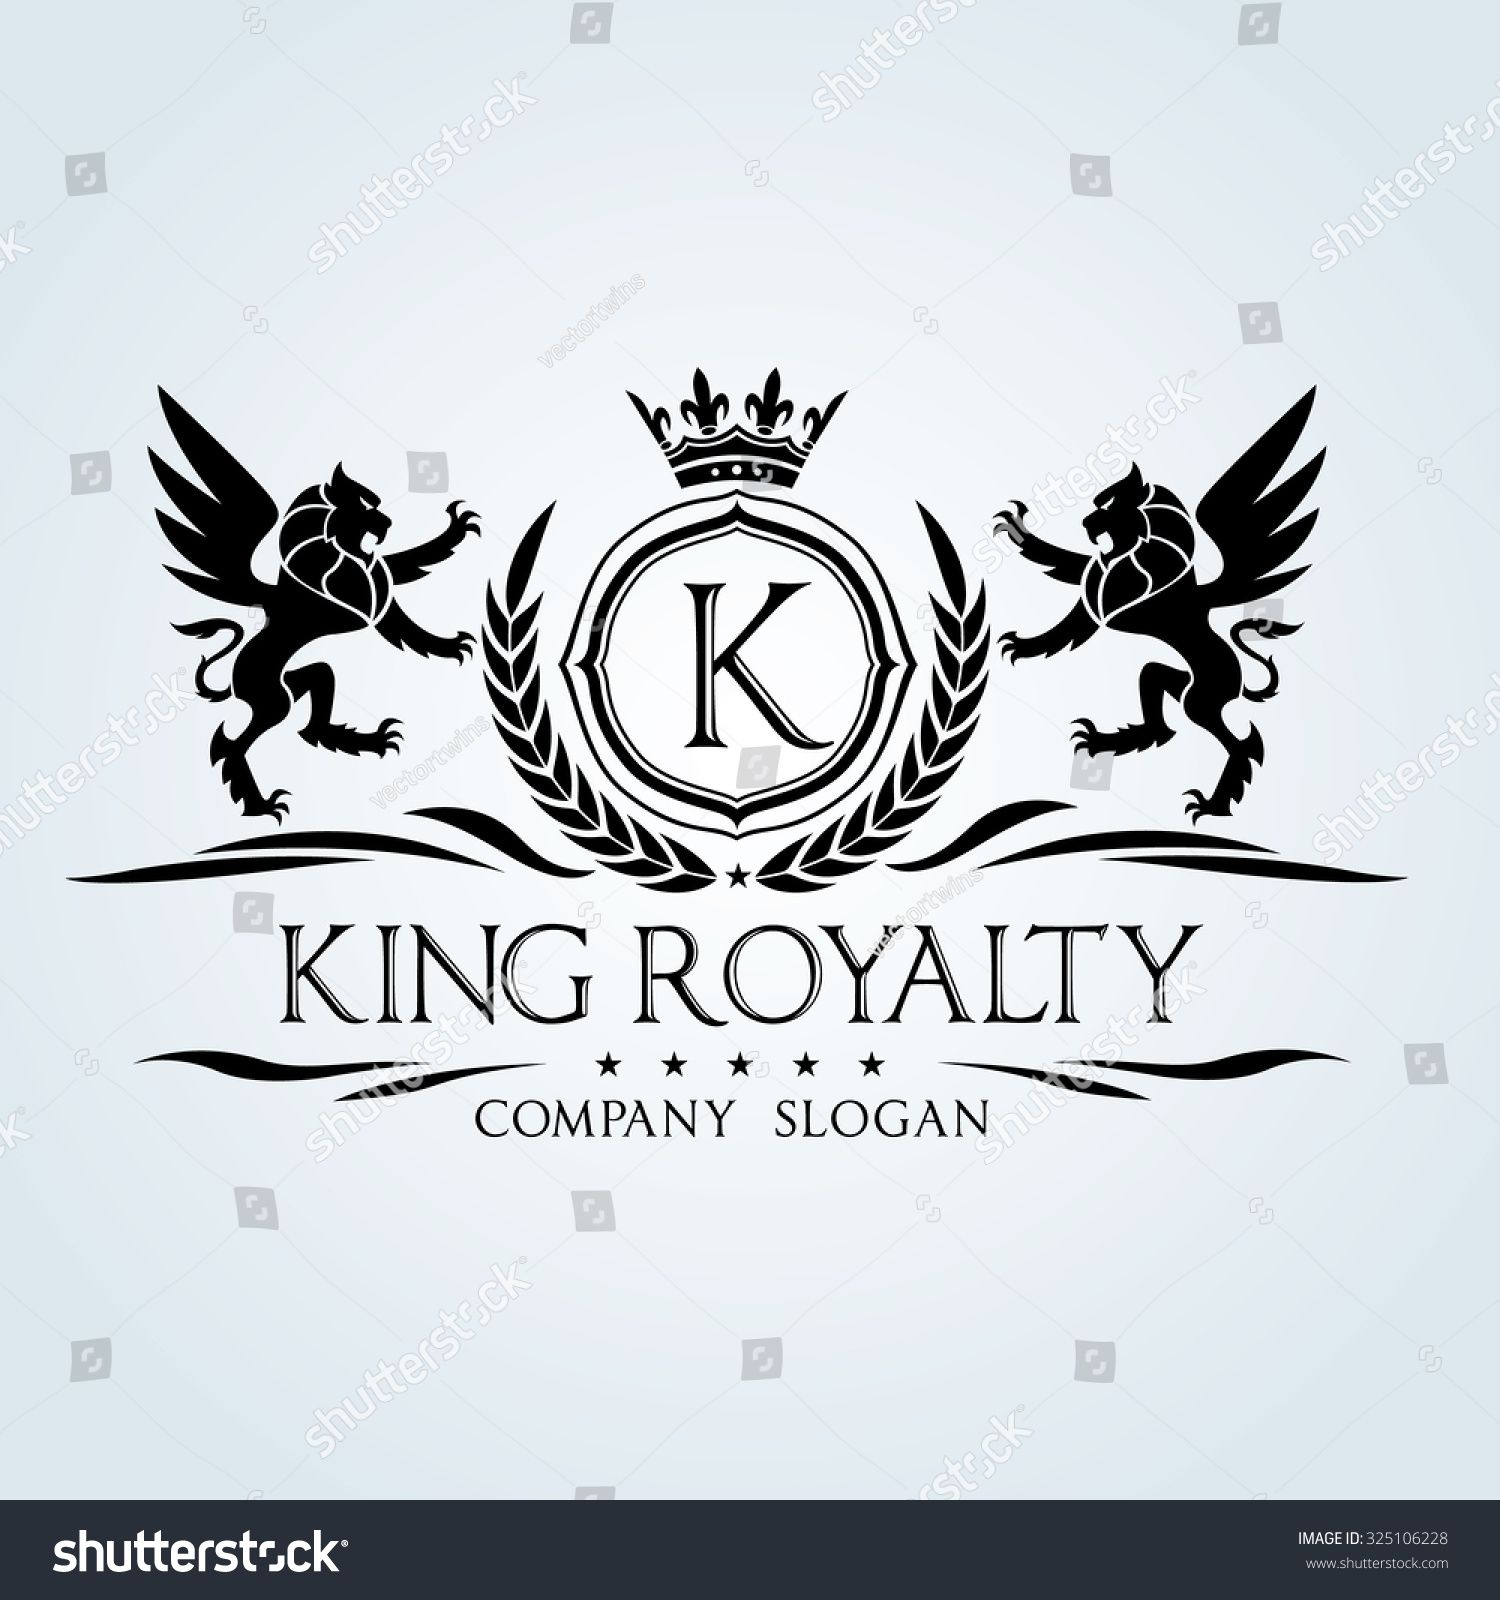 1500x1600 King Royalty,boutique Brand,real Estate,property,royalty,crown